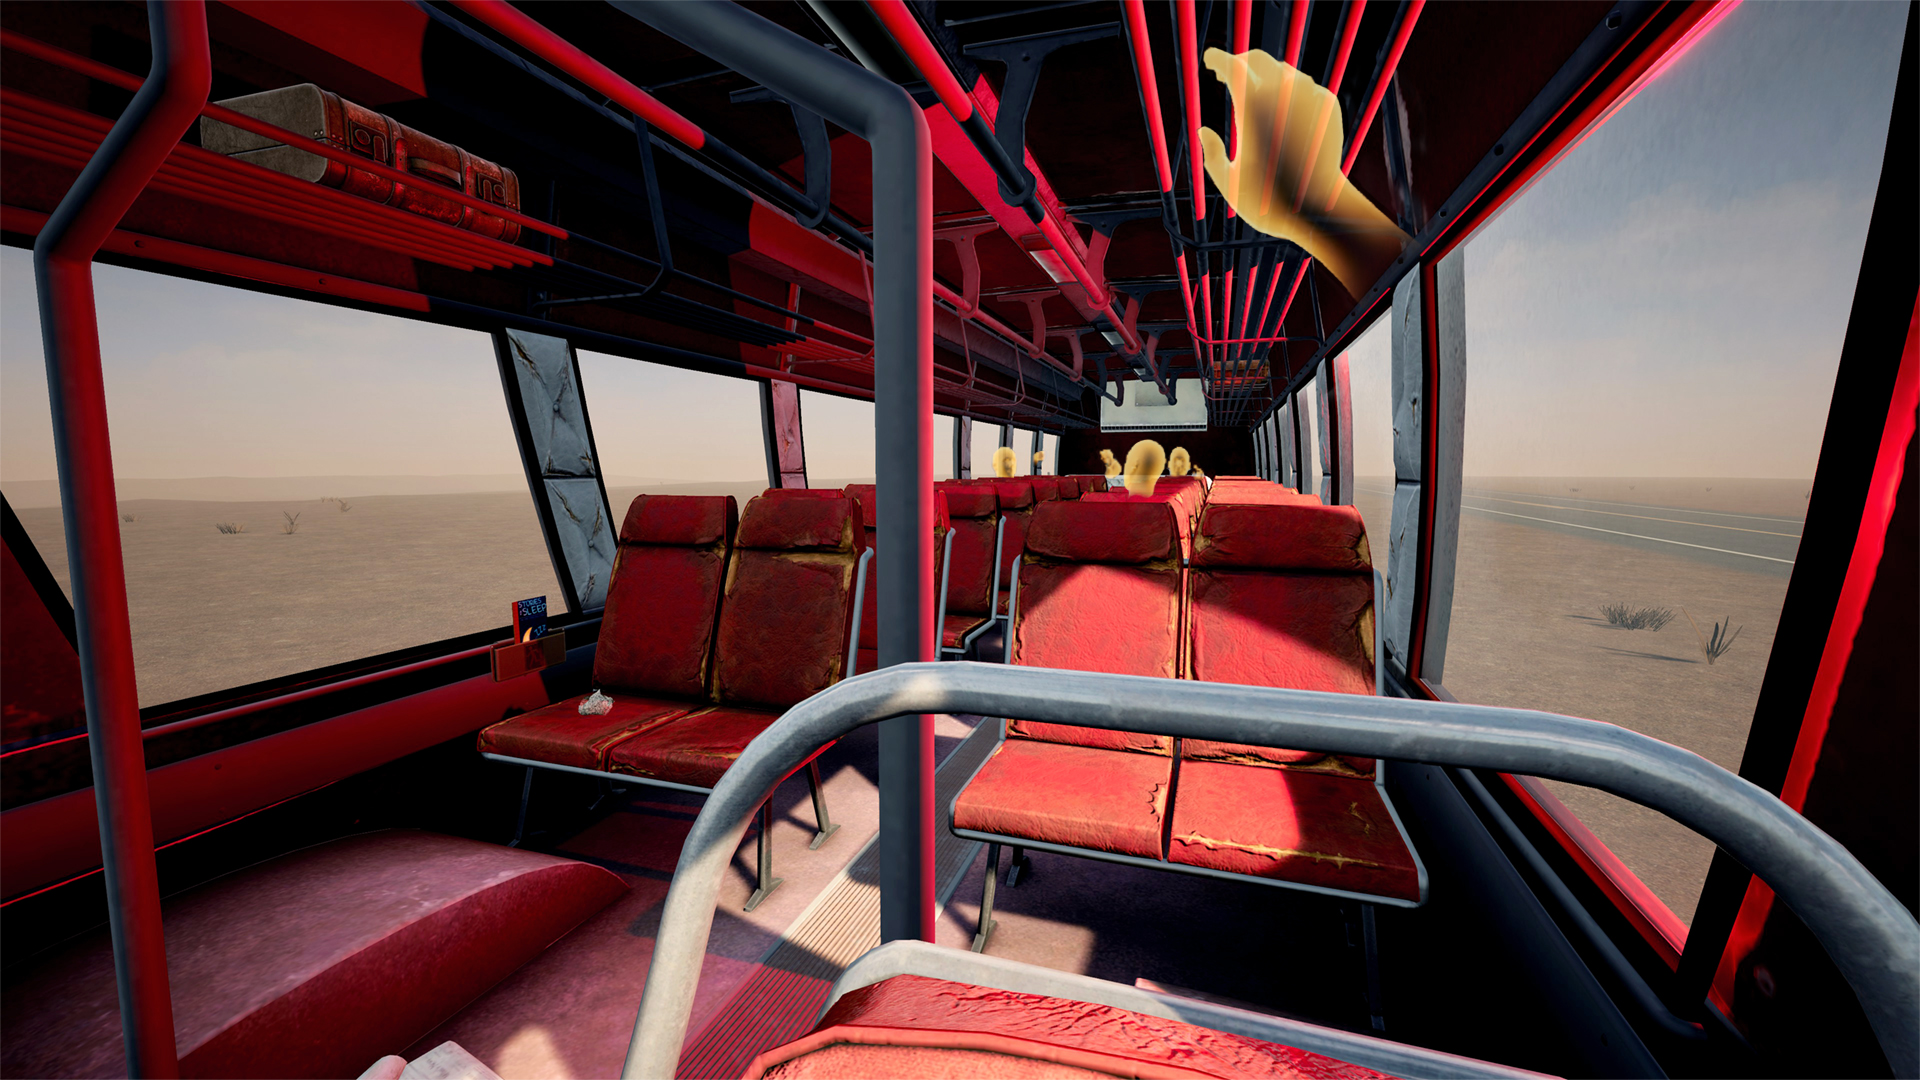 Online VR users can join you on your desert bus drive. They're too far away to actually harass you while you drive the bus.